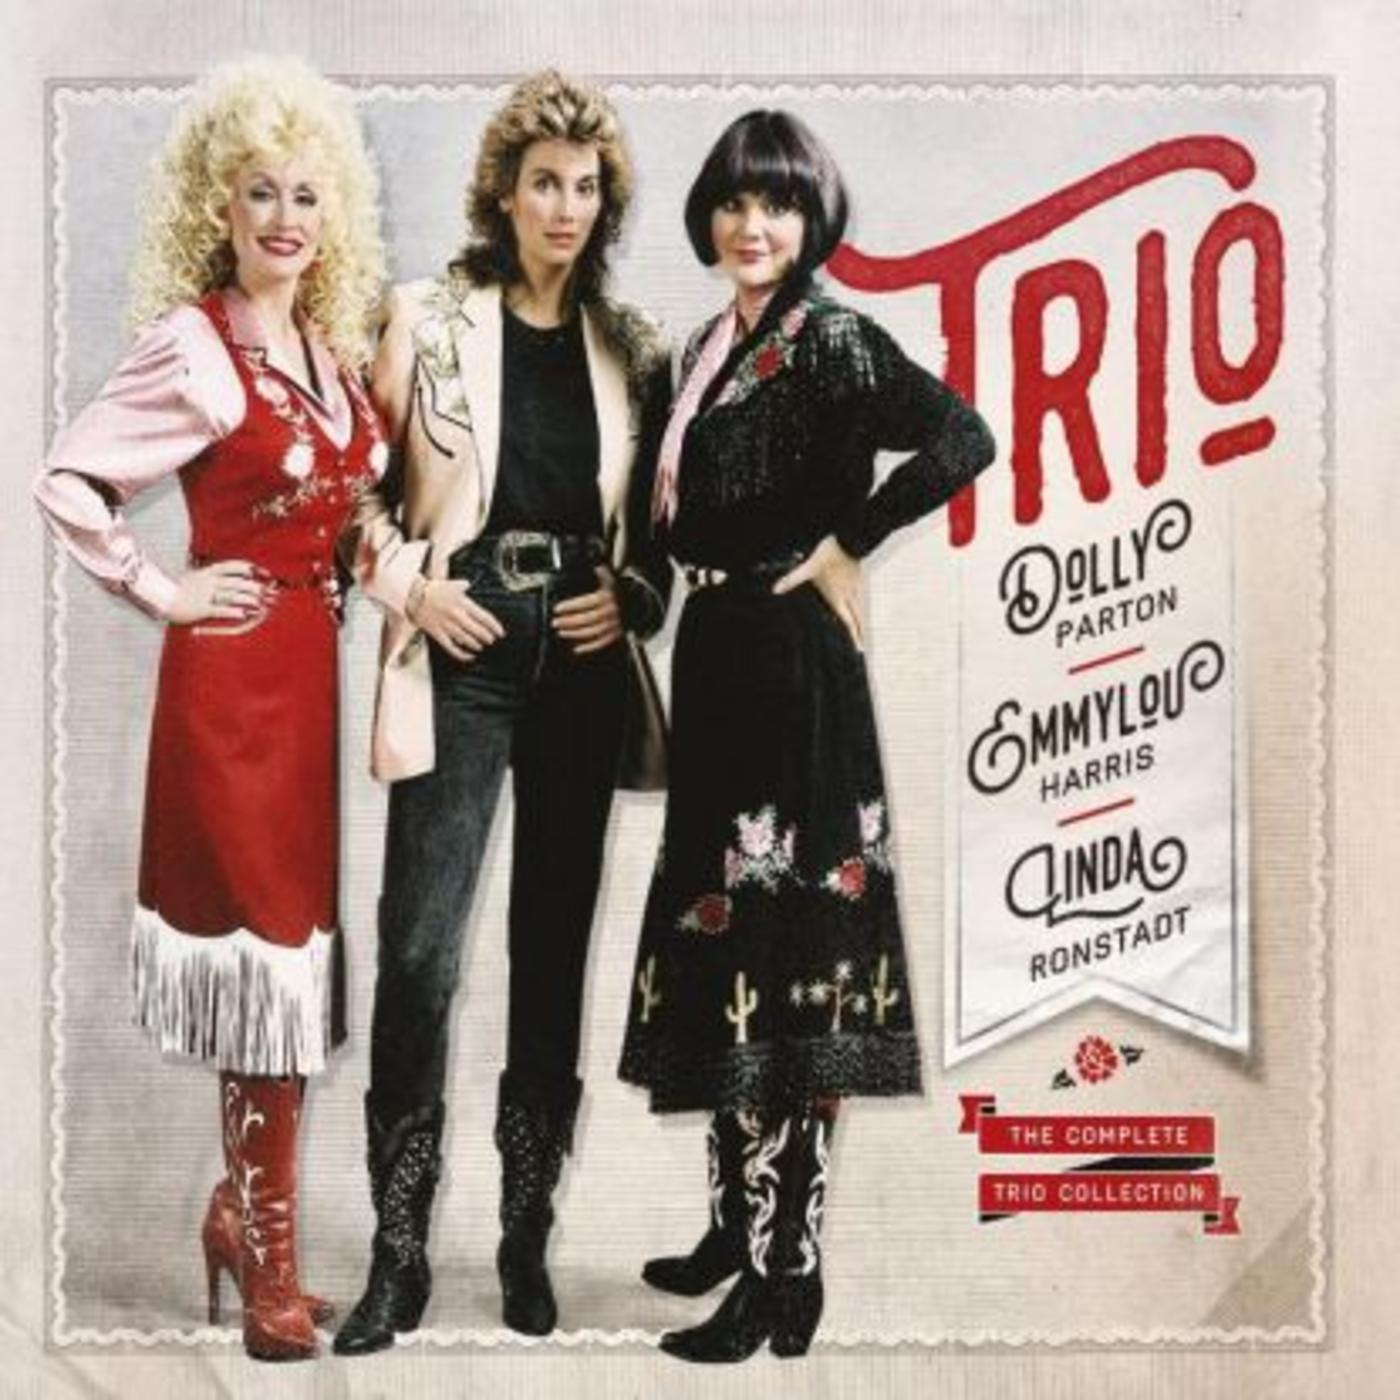 The Complete Trio Collection (Deluxe)